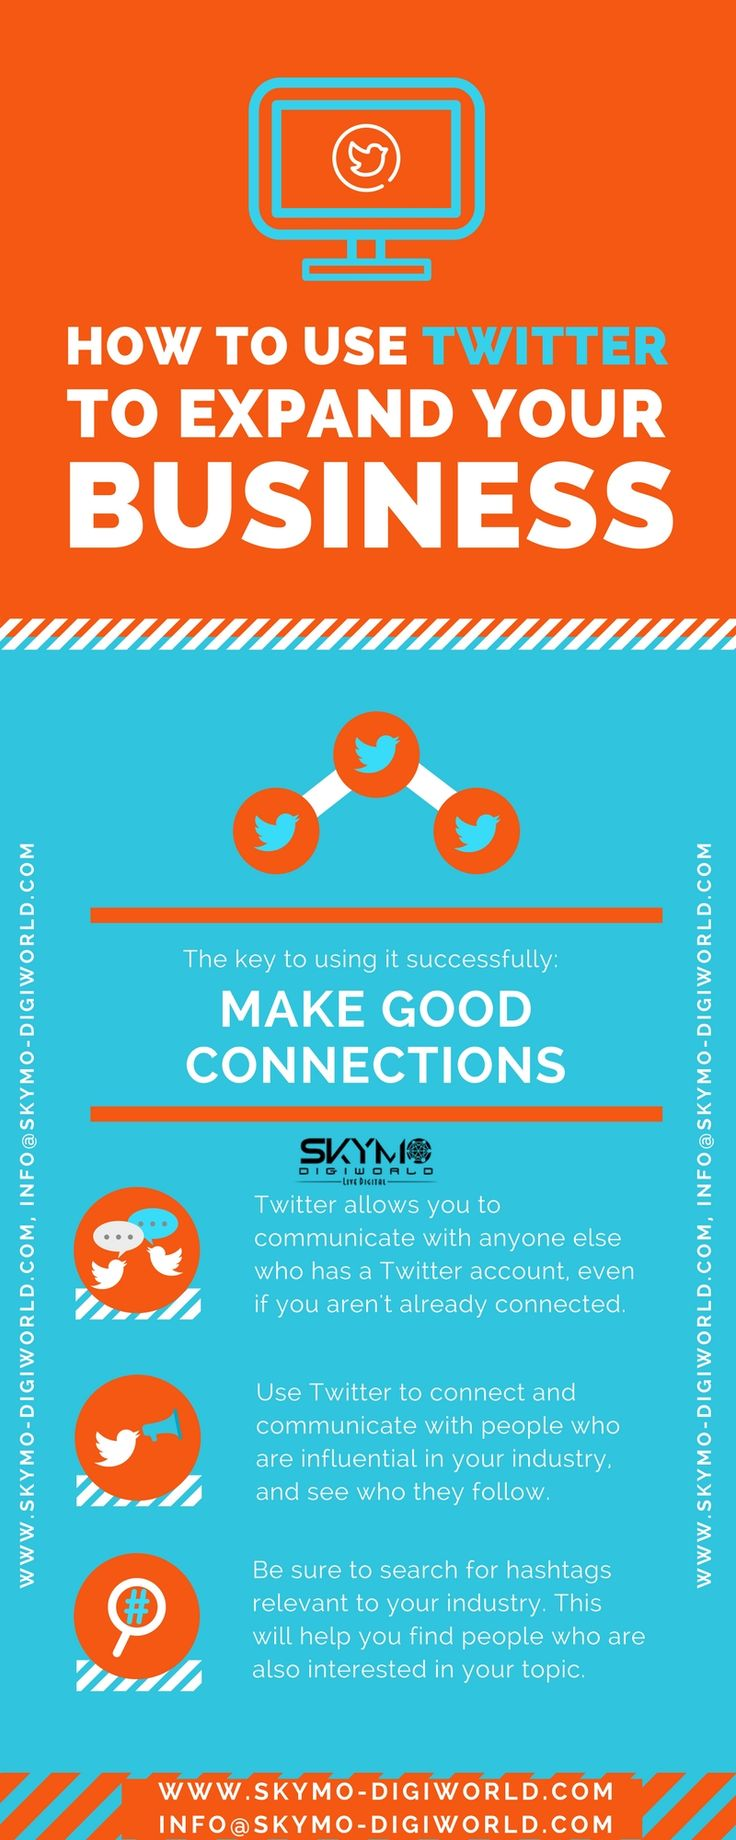 How to use Twitter to expand your Business? Here,we at Skymo Digiworld - #Best #SEO #company #in #Pune , sharing some tips regarding Twitter and #Social #Media #Marketing.For more details please visit-http://www.skymo-digiworld.com/social-media-marketing-services-in-pune.html